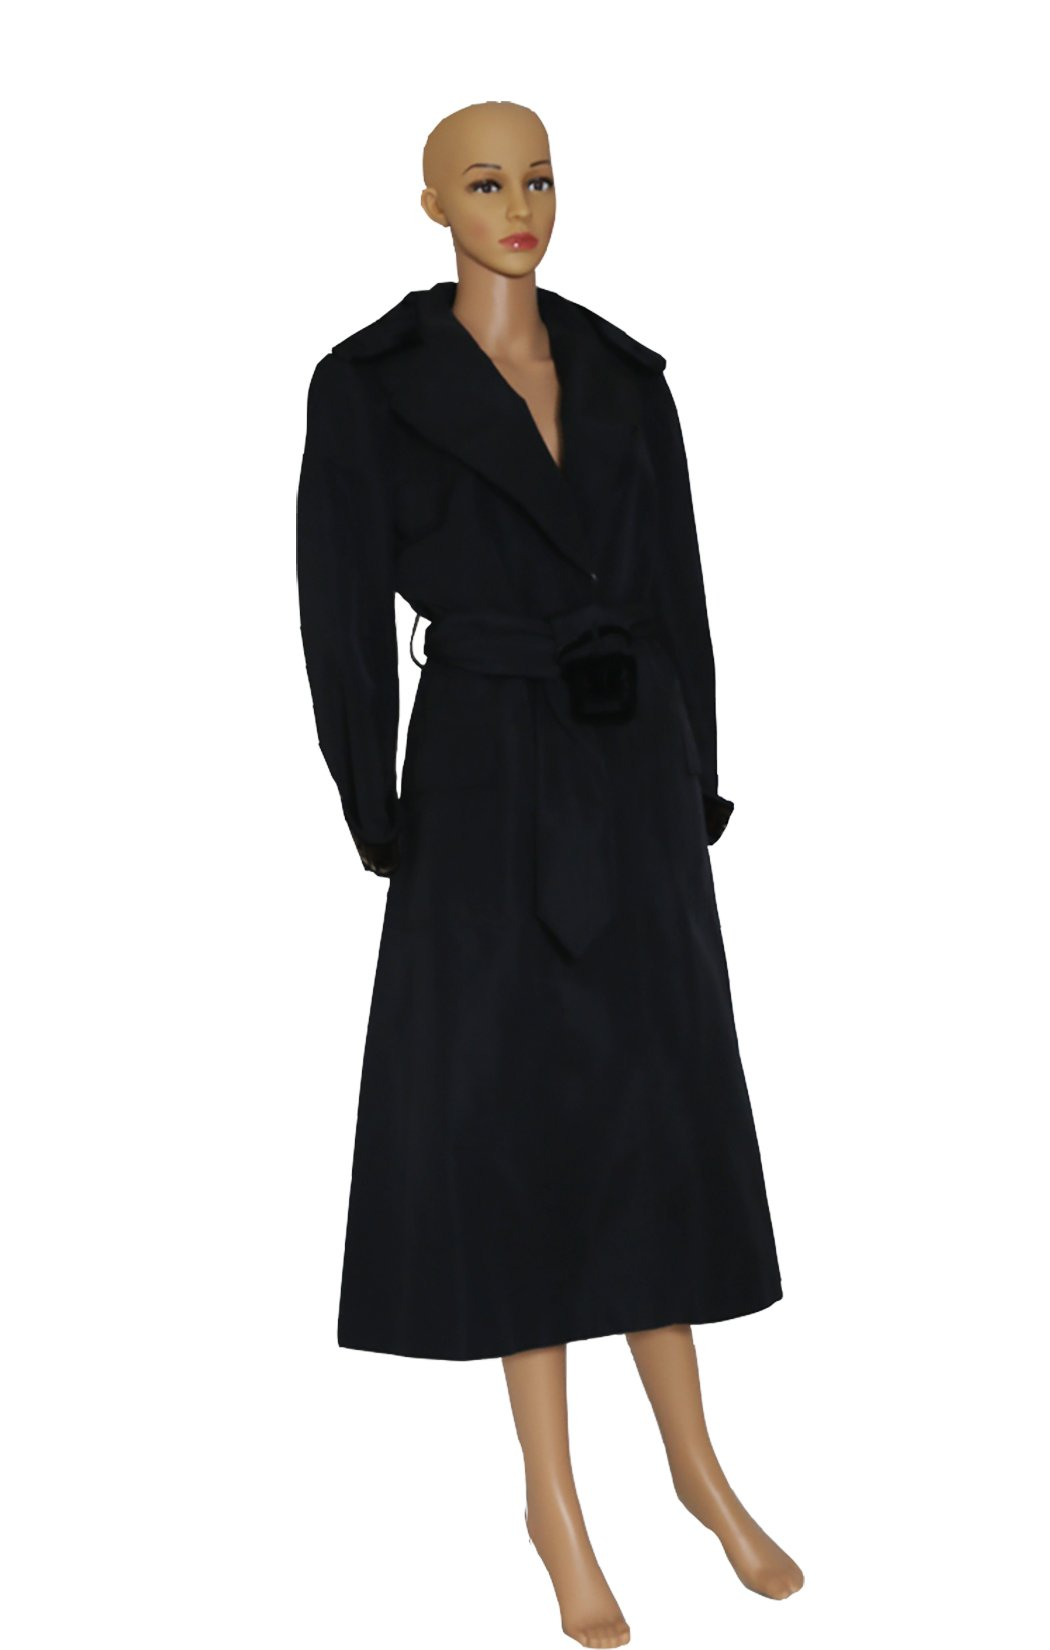 Front view of FENDI Black Trench Coat Size: IT 44 (US 8)